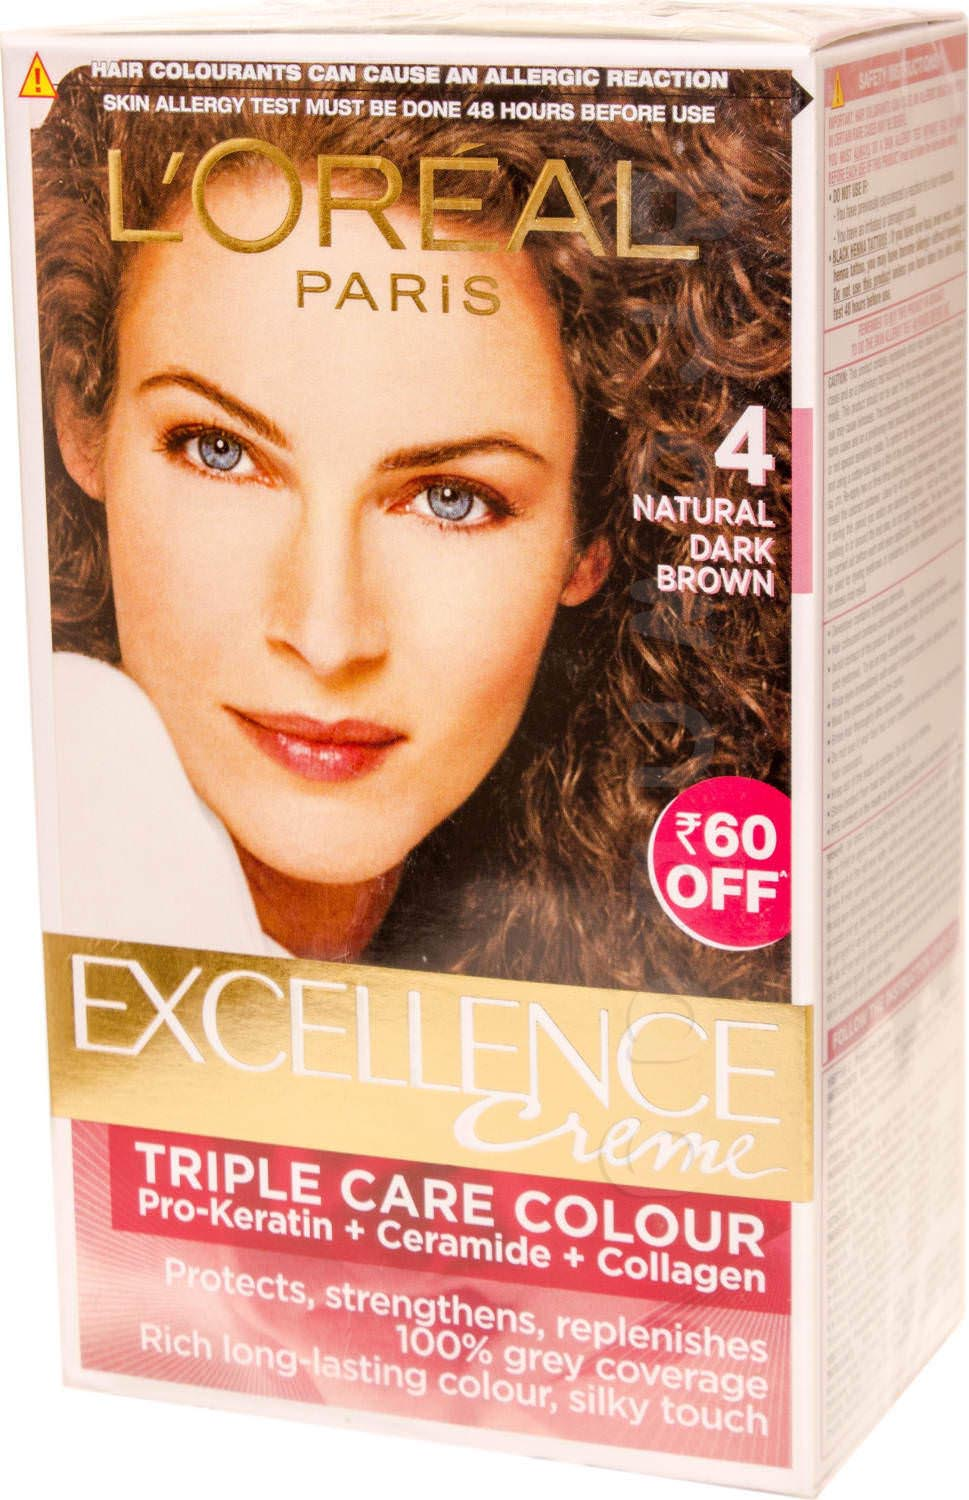 Loreal Paris Excellence Cream Triple Care Hair Colour, Natural Dark Brown 4 with Pro-Keratin, Ceramide & Collagen